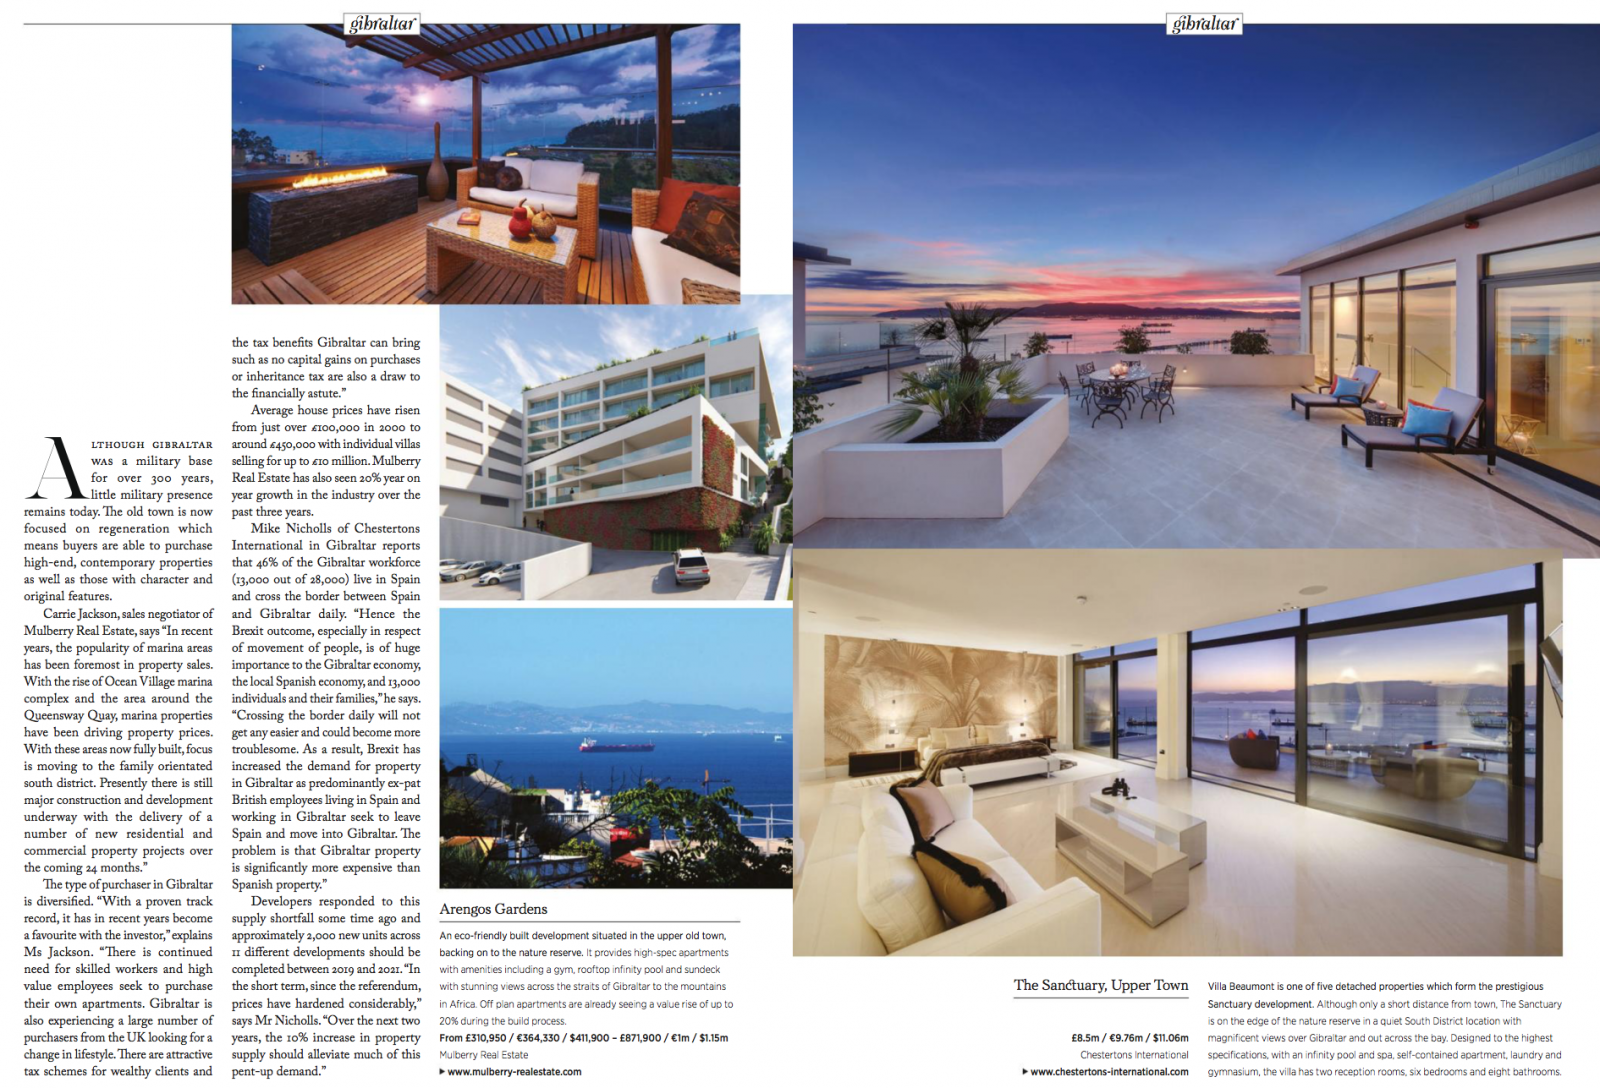 International Property & Travel Magazine Image